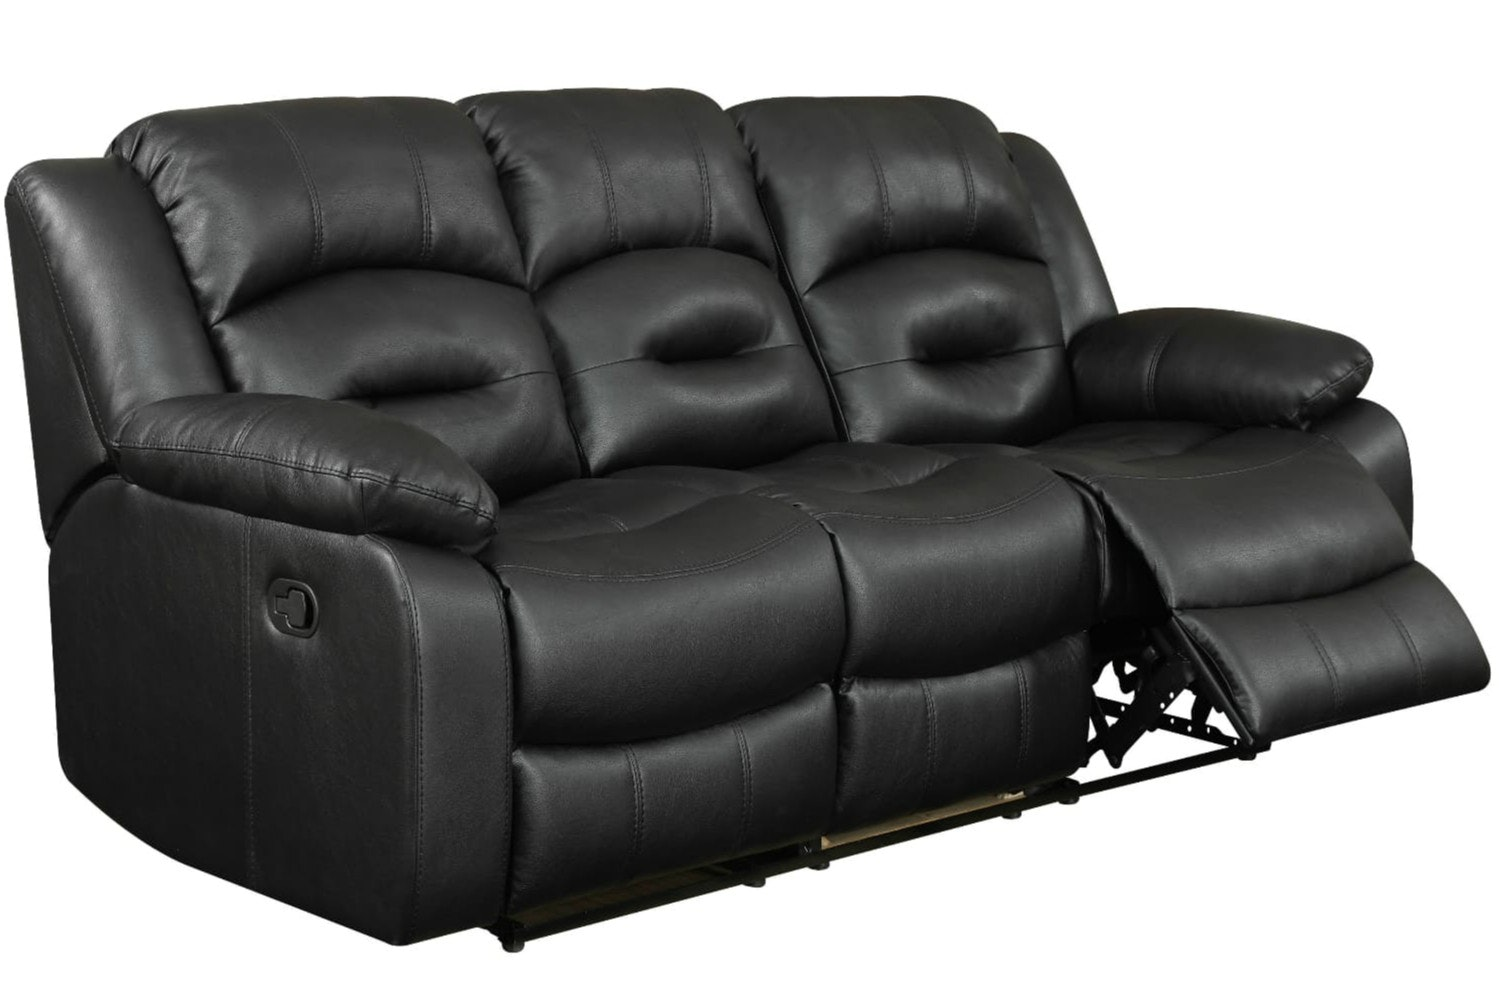 Hunter 3 Seater Recliner Sofa | Black